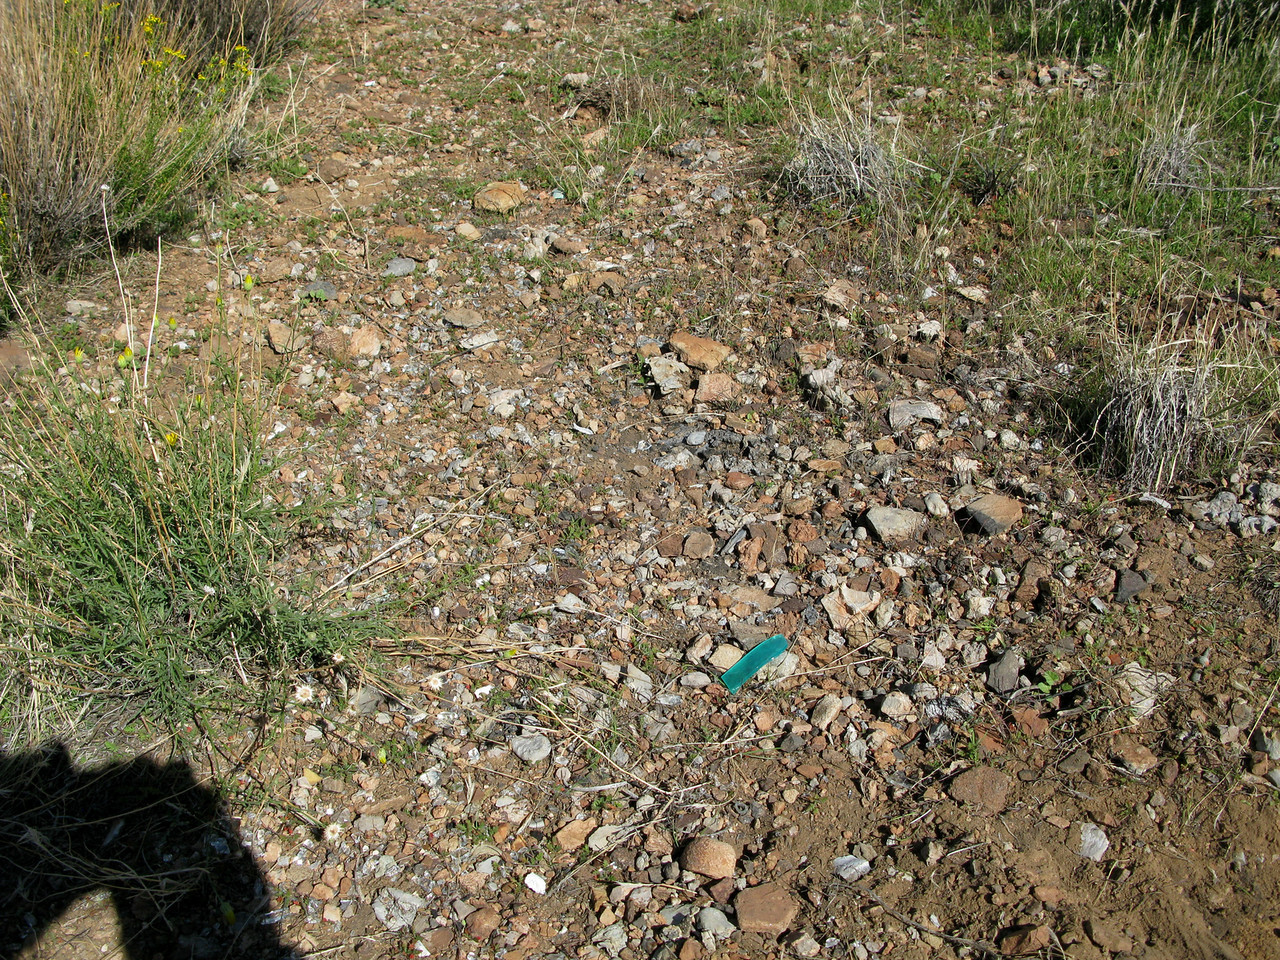 The burn area contained numerous small artifacts that were overlooked by the recovery crews in 1986.